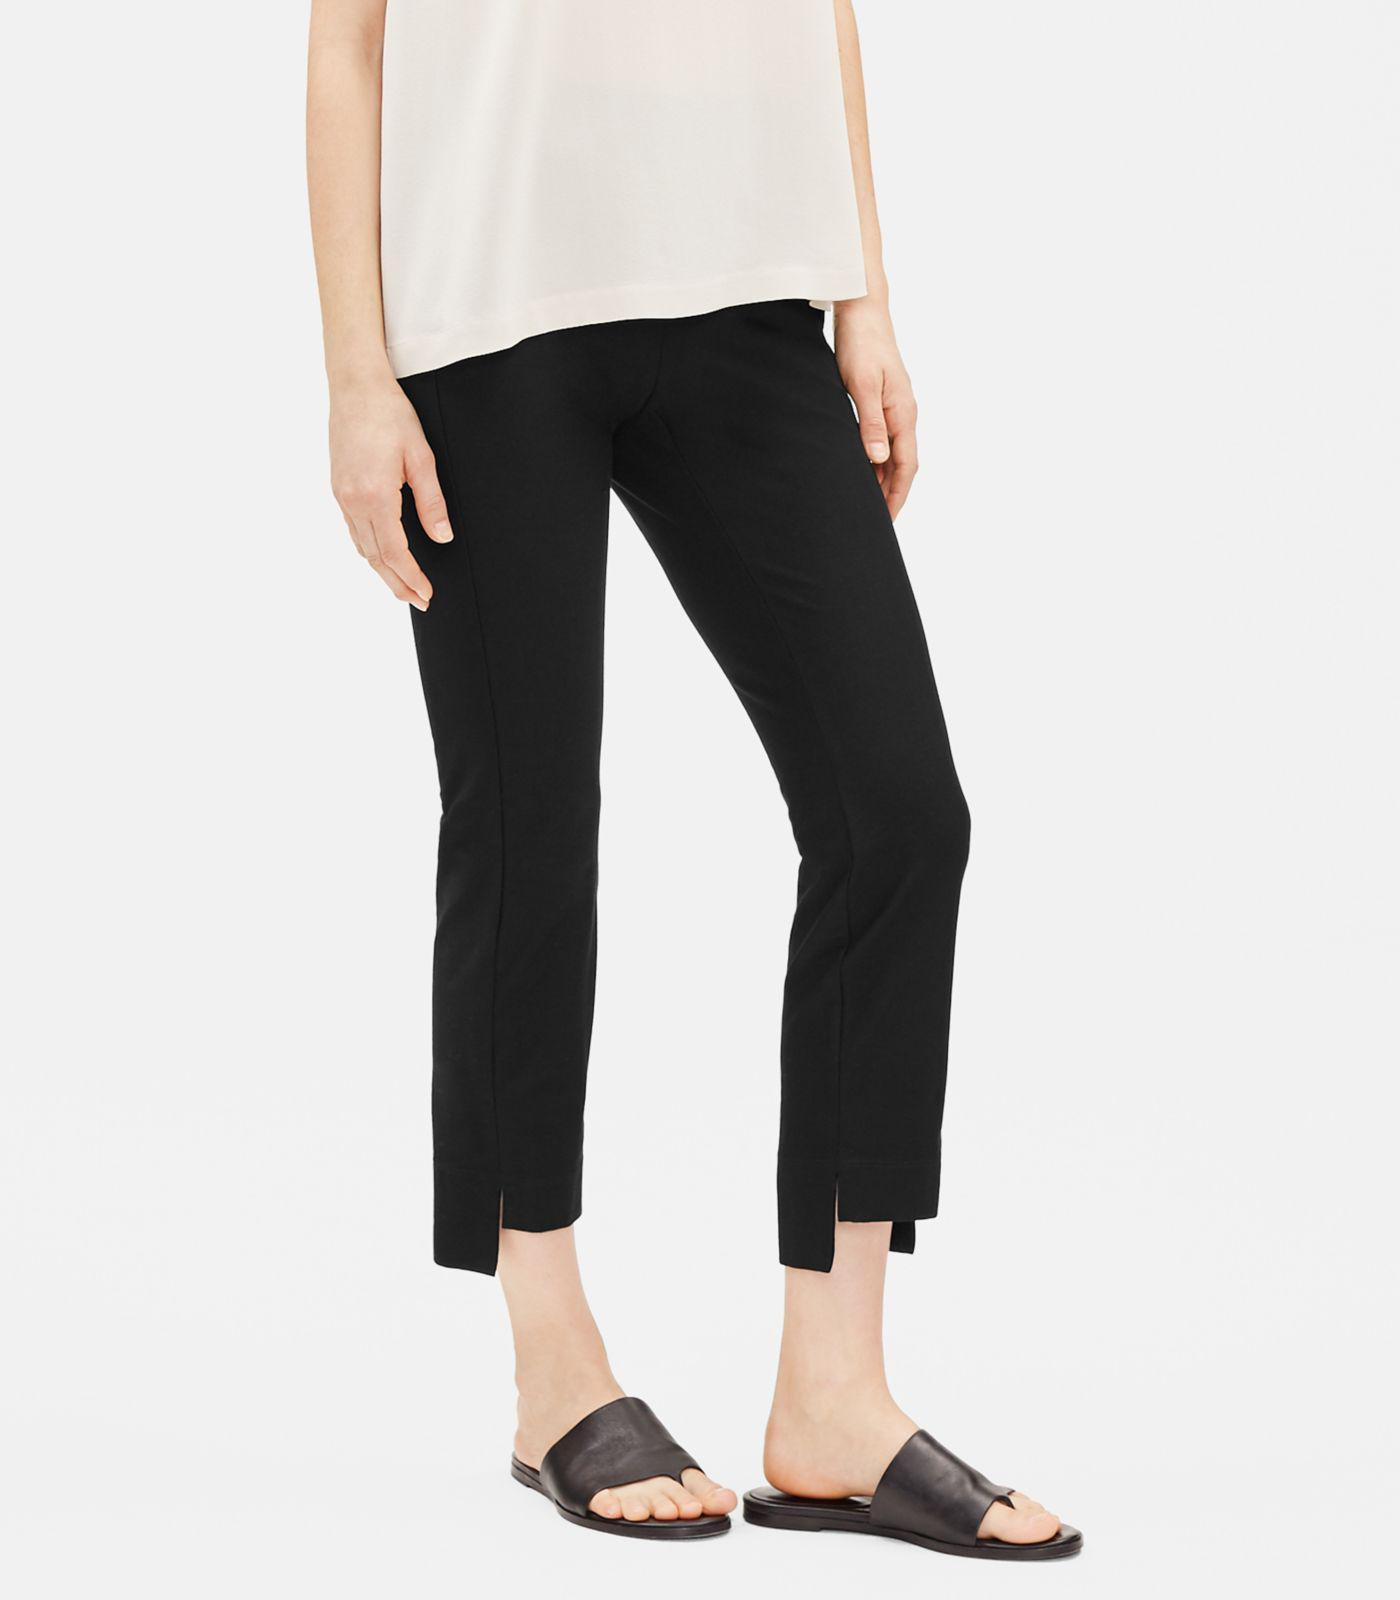 b43a1537e40c Eileen Fisher - Black Washable Stretch Crepe Slim Cropped Pant - Lyst. View  fullscreen